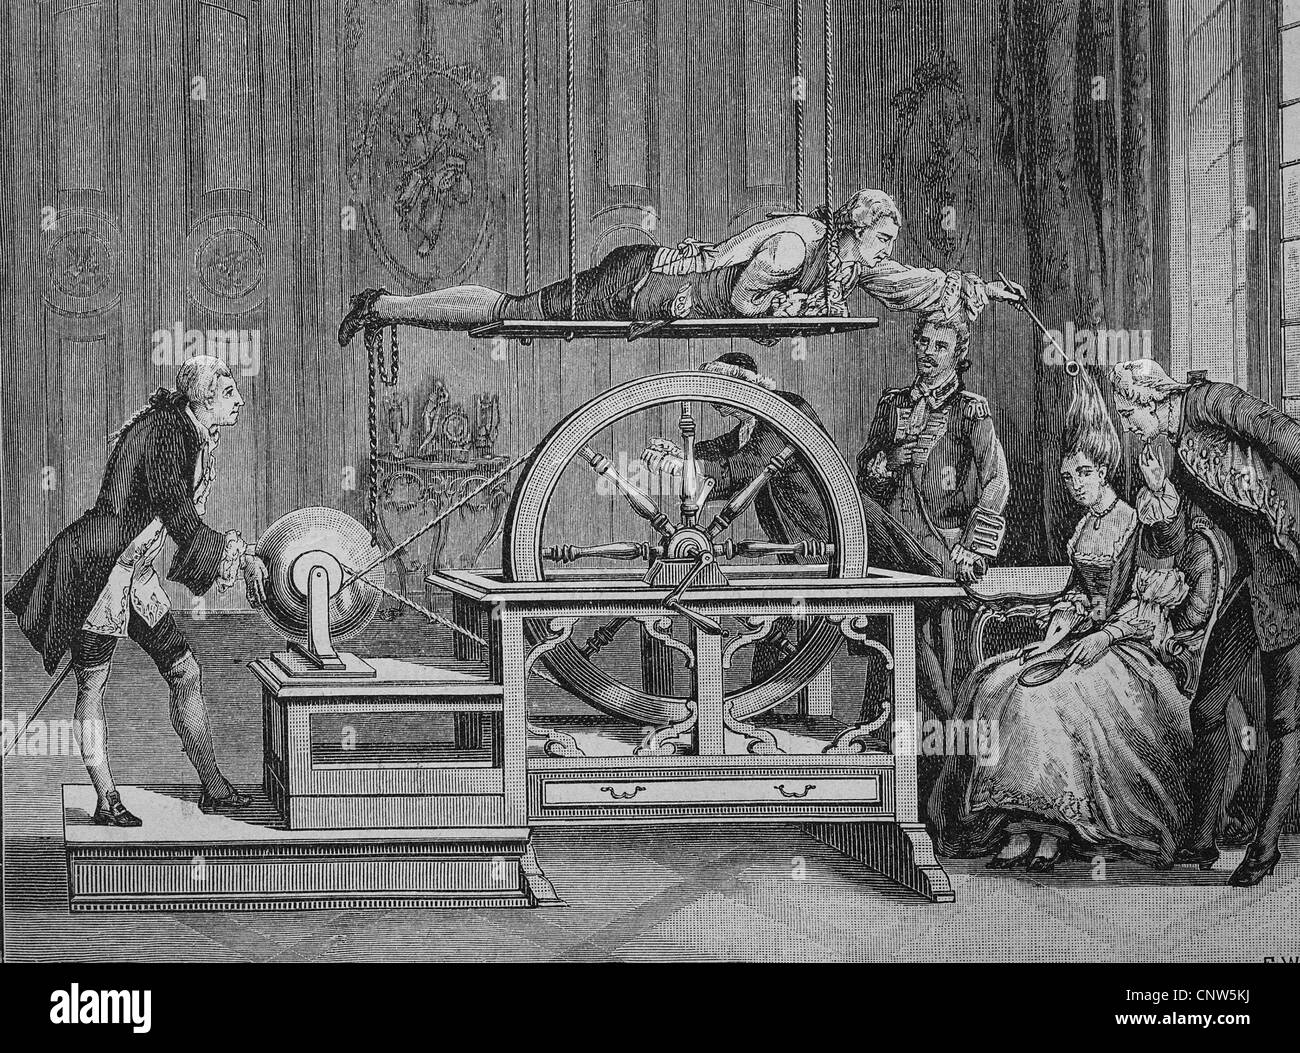 Electricity experiment in the 18th Century, historical engraving, 1880 - Stock Image